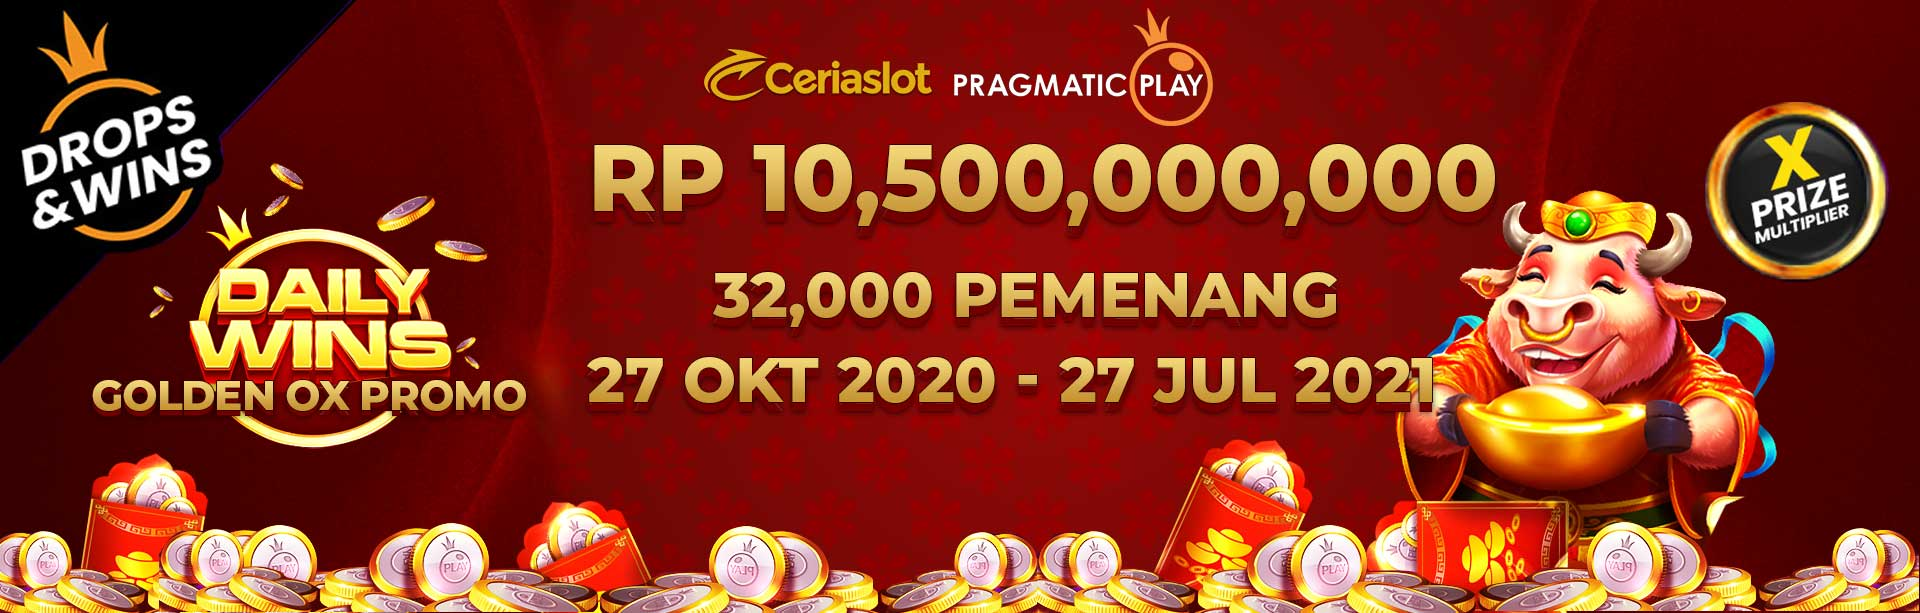 Daily Wins Golden OX Promo - CERIASLOT